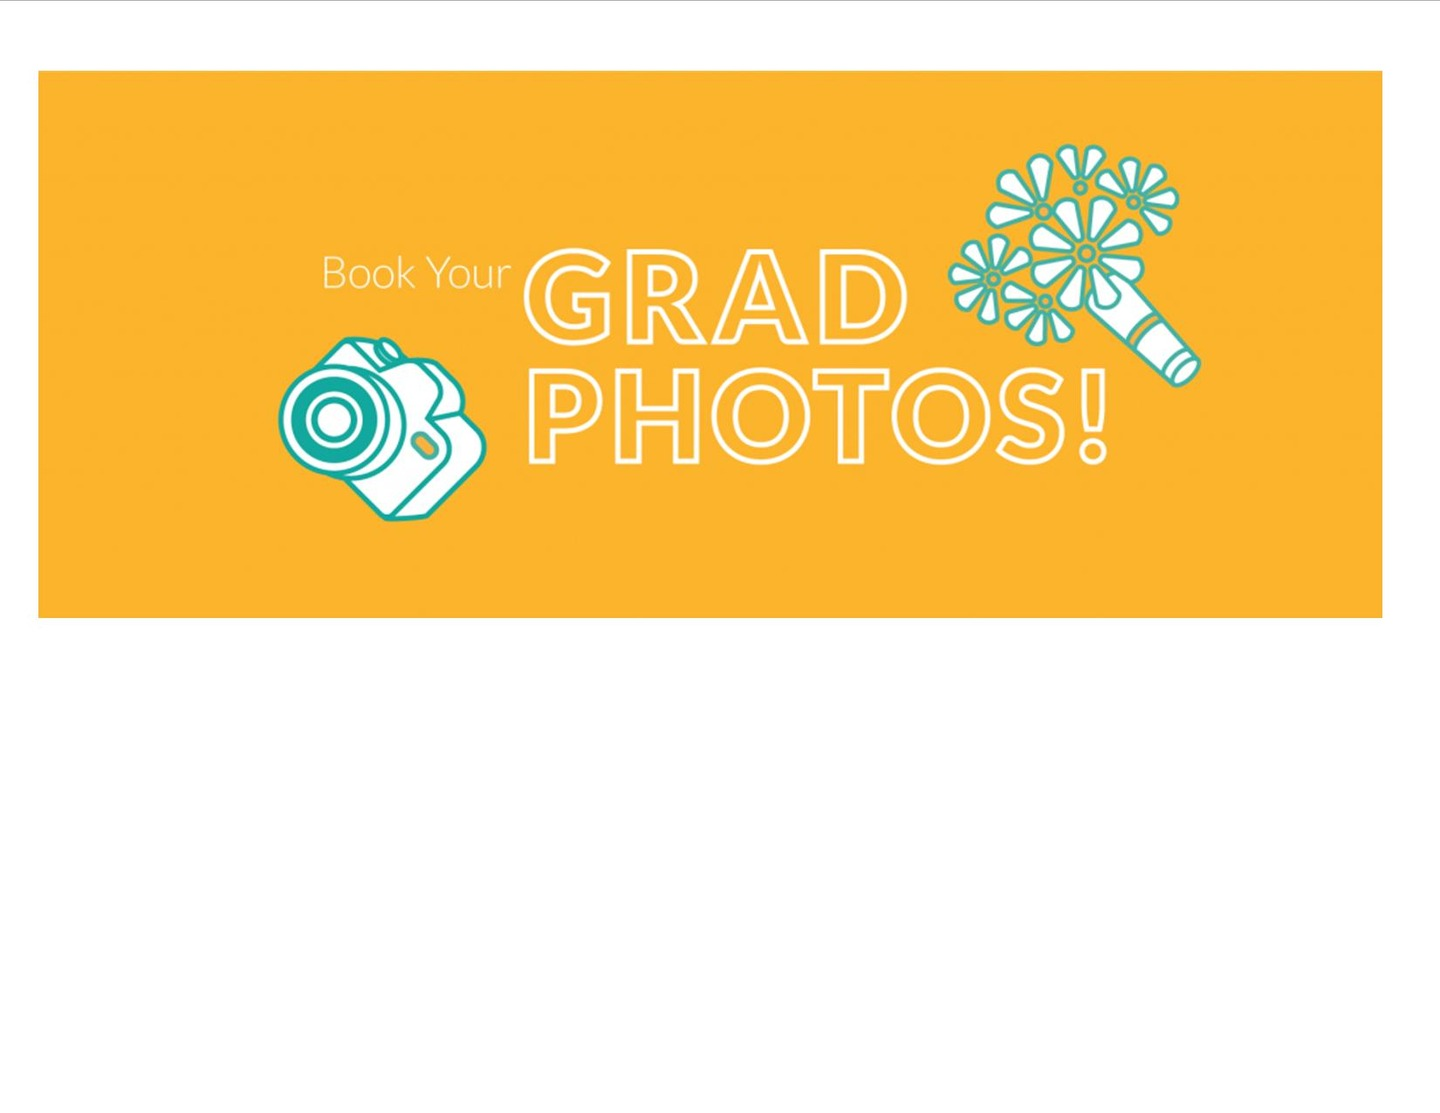 Time to Book for Grad Portraits